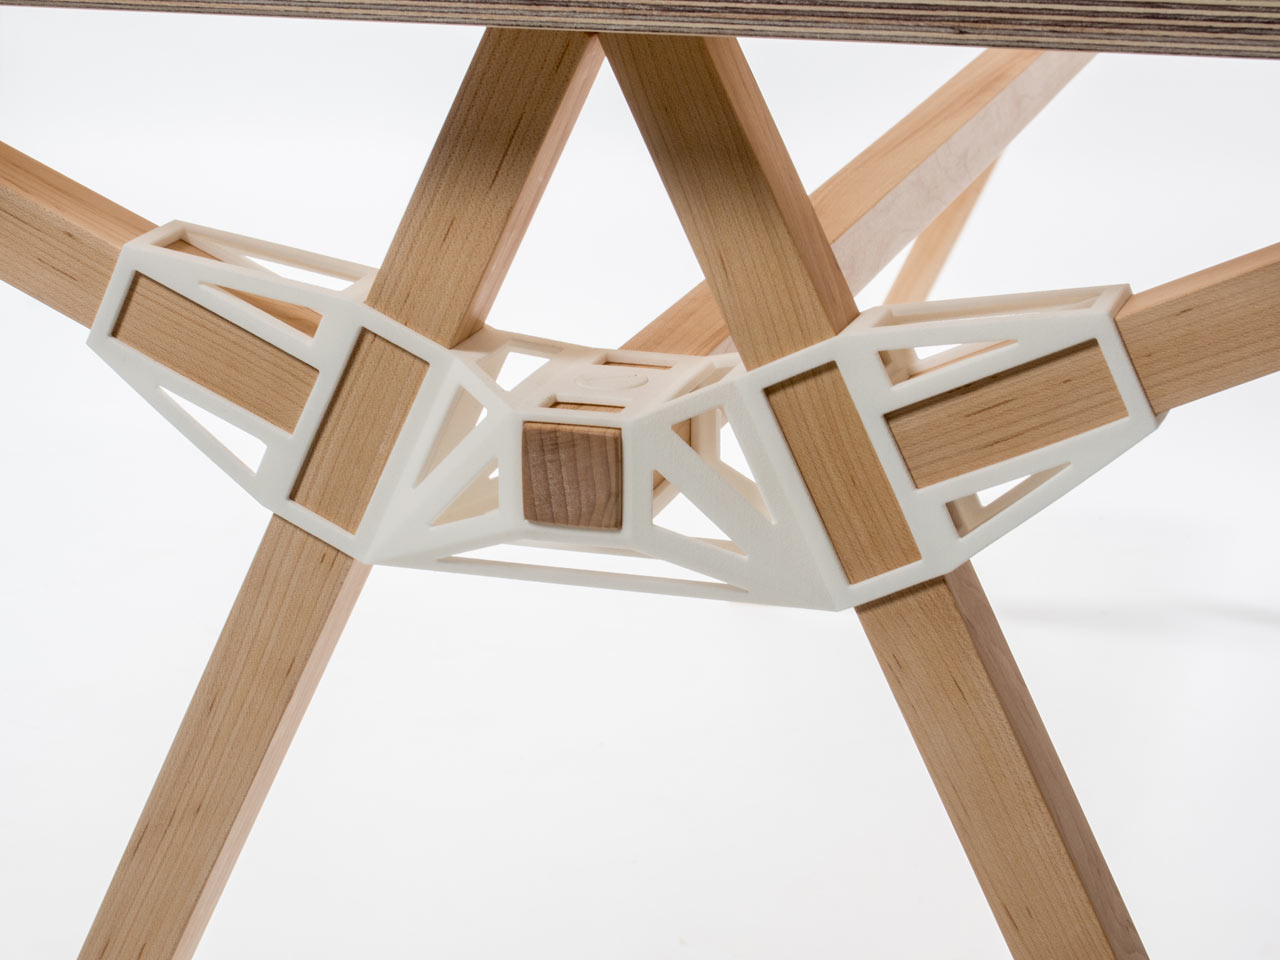 3d printed furniture joinery by studio minale maeda for Furniture 3d printing